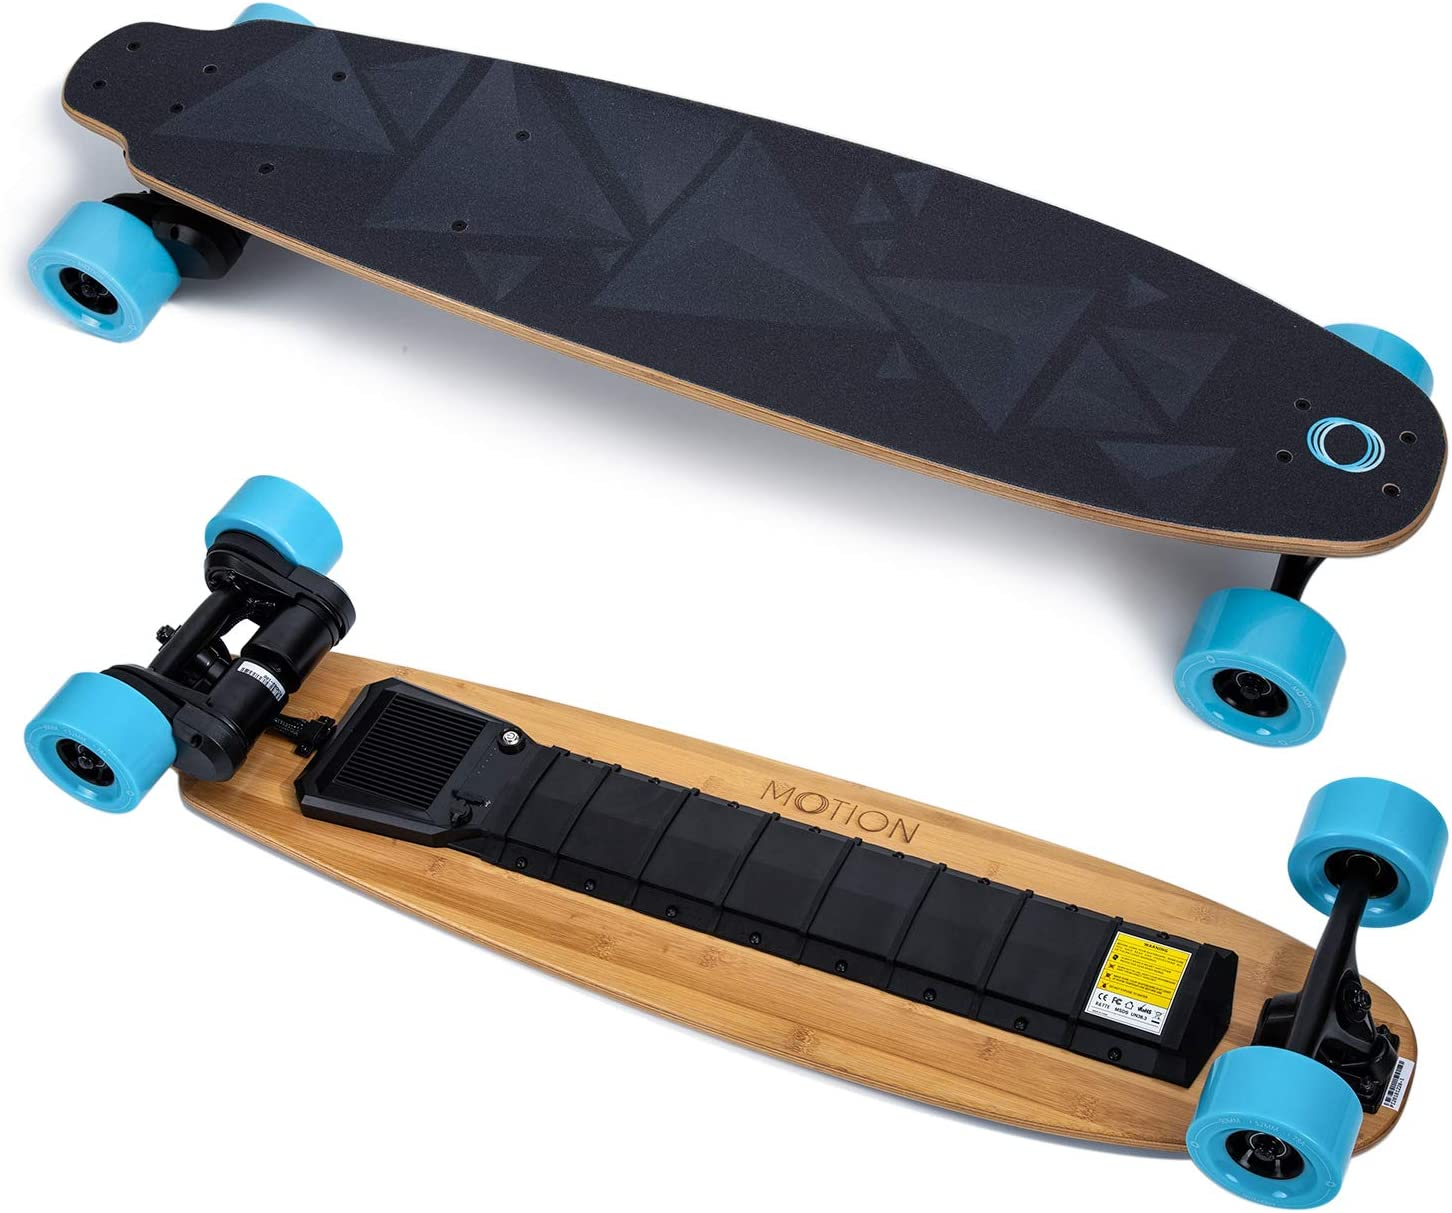 Motion 38 Inches Electric Skateboard and Longboard with Remote Controller Bamboo Deck 23 MP H Top Speed 10 Miles Range